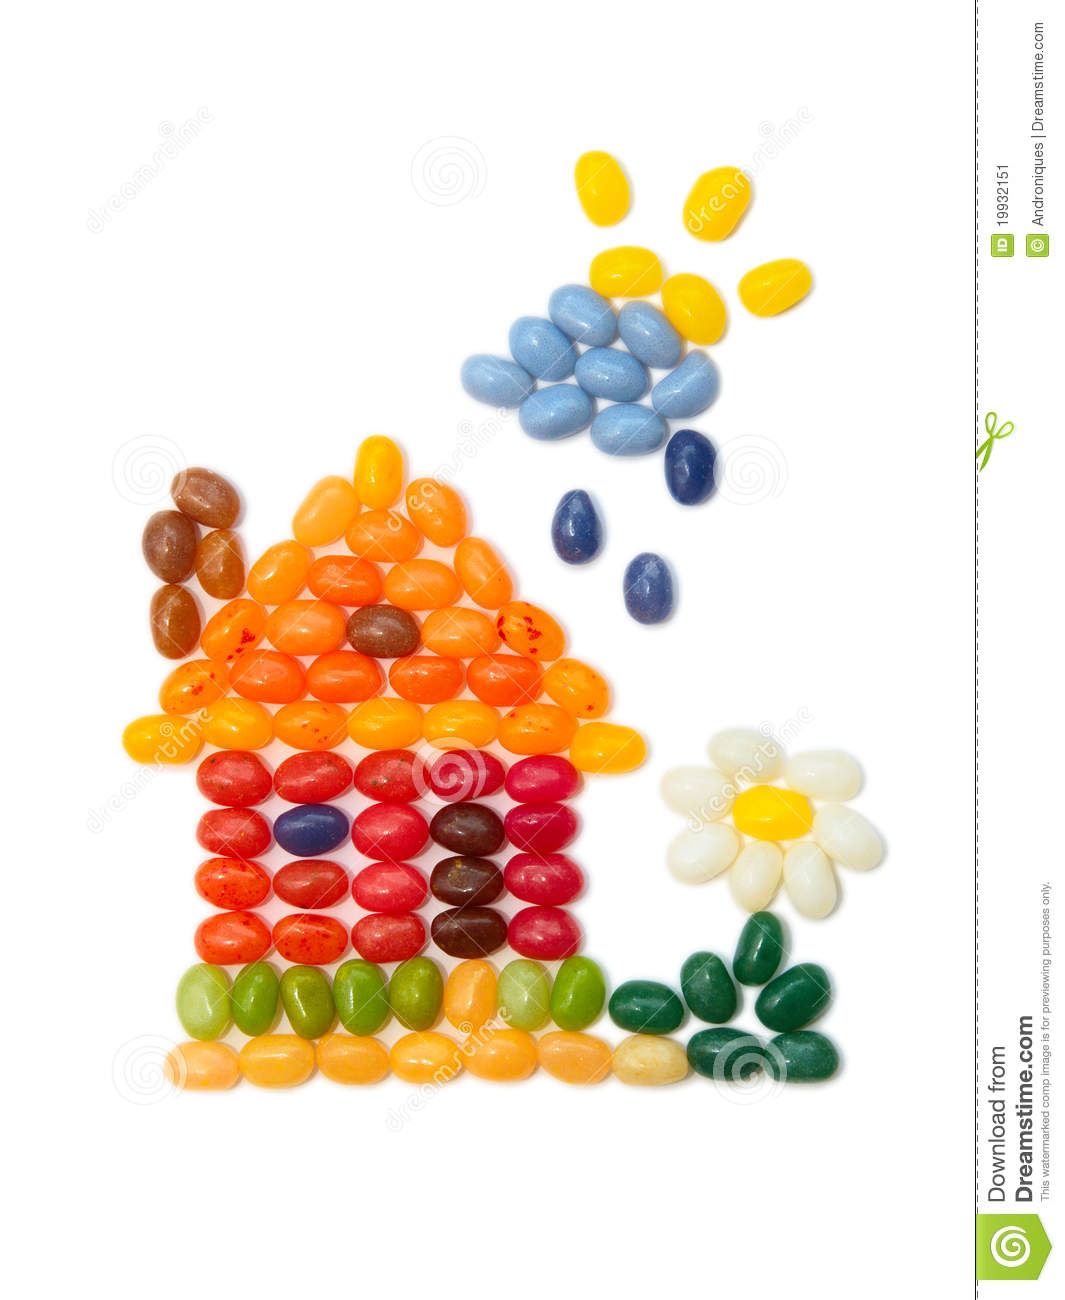 sweet flower craft home sweet home jelly beans design stock image 3048